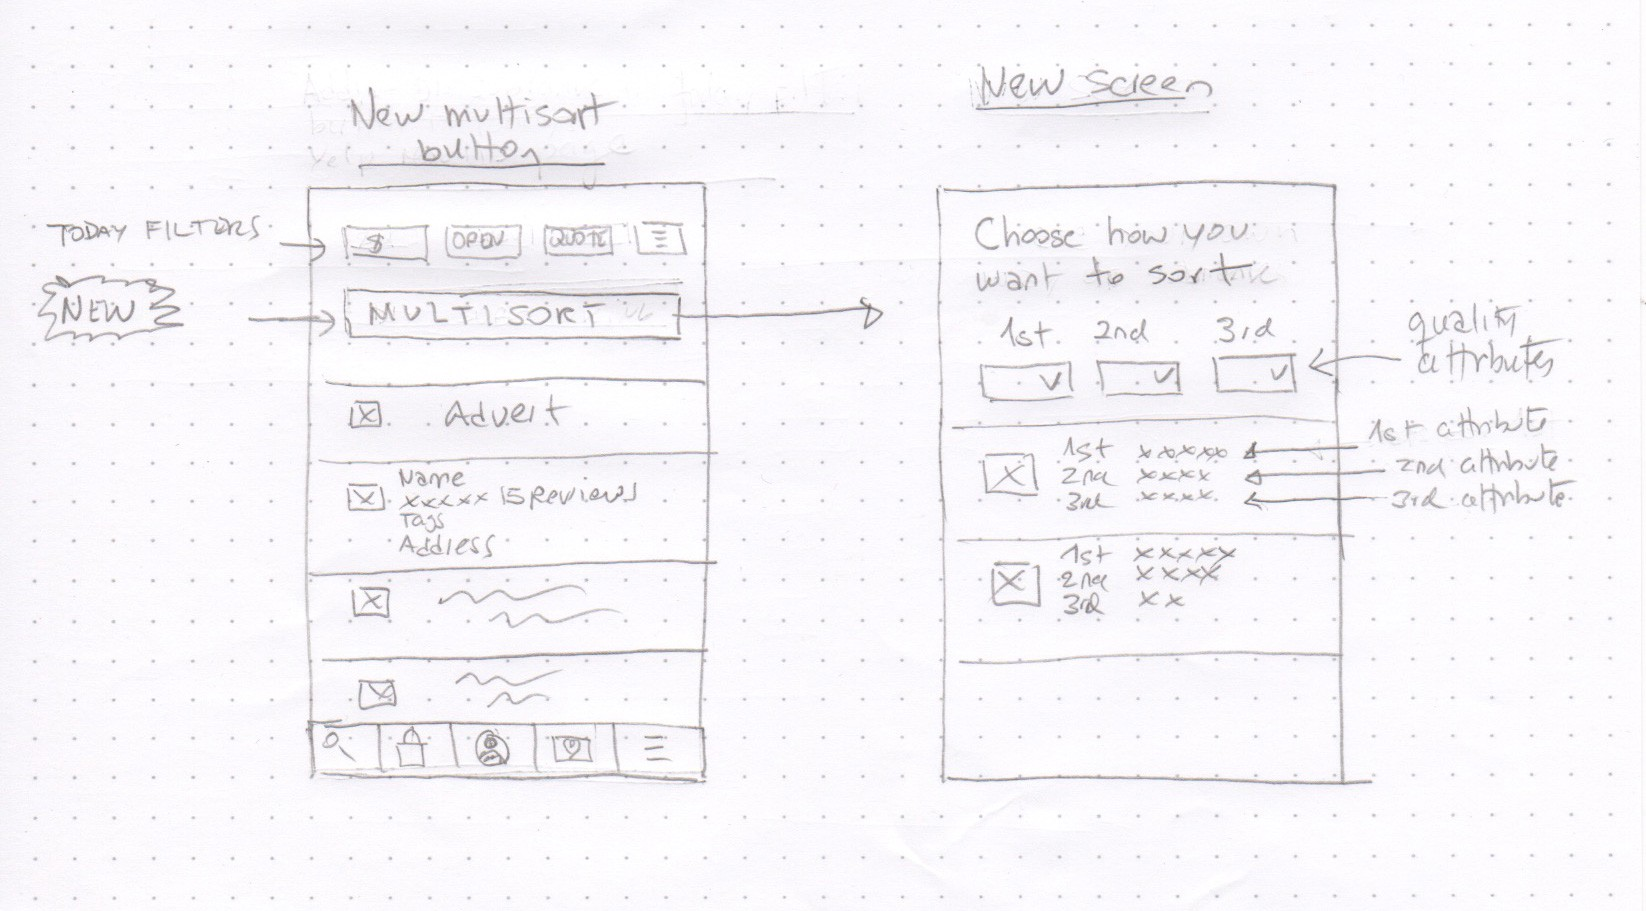 Wireframe of solution